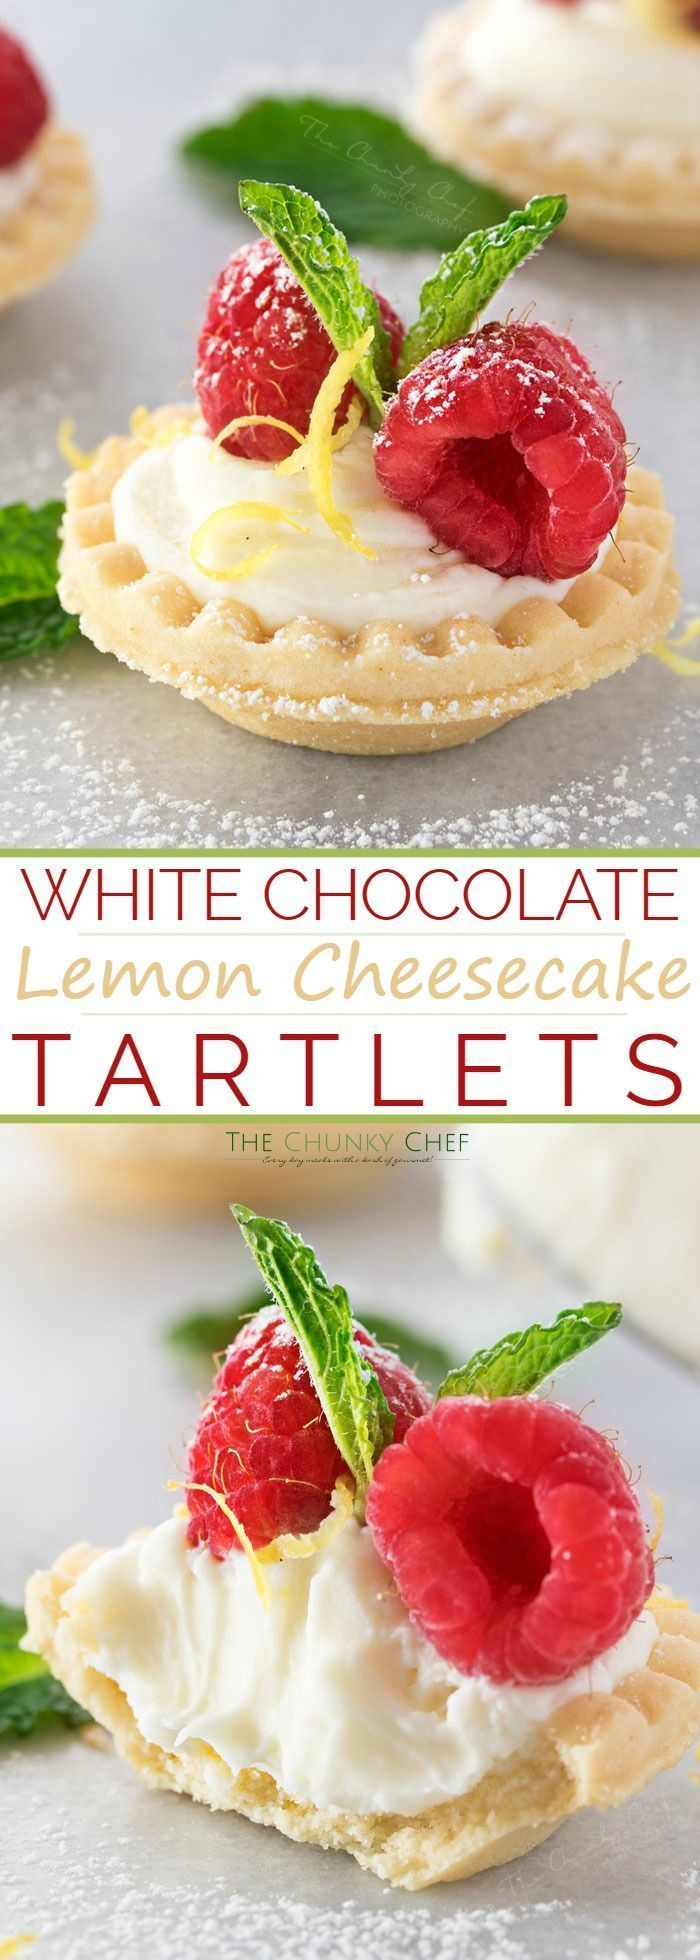 Mini No Bake White Chocolate Lemon Cheesecake Tarts | Creamy no bake white chocolate lemon cheesecake tarts, topped with your favorite fresh fruit, mint, and a dusting of powdered sugar. Impressive and easy! | thechunkychef.com